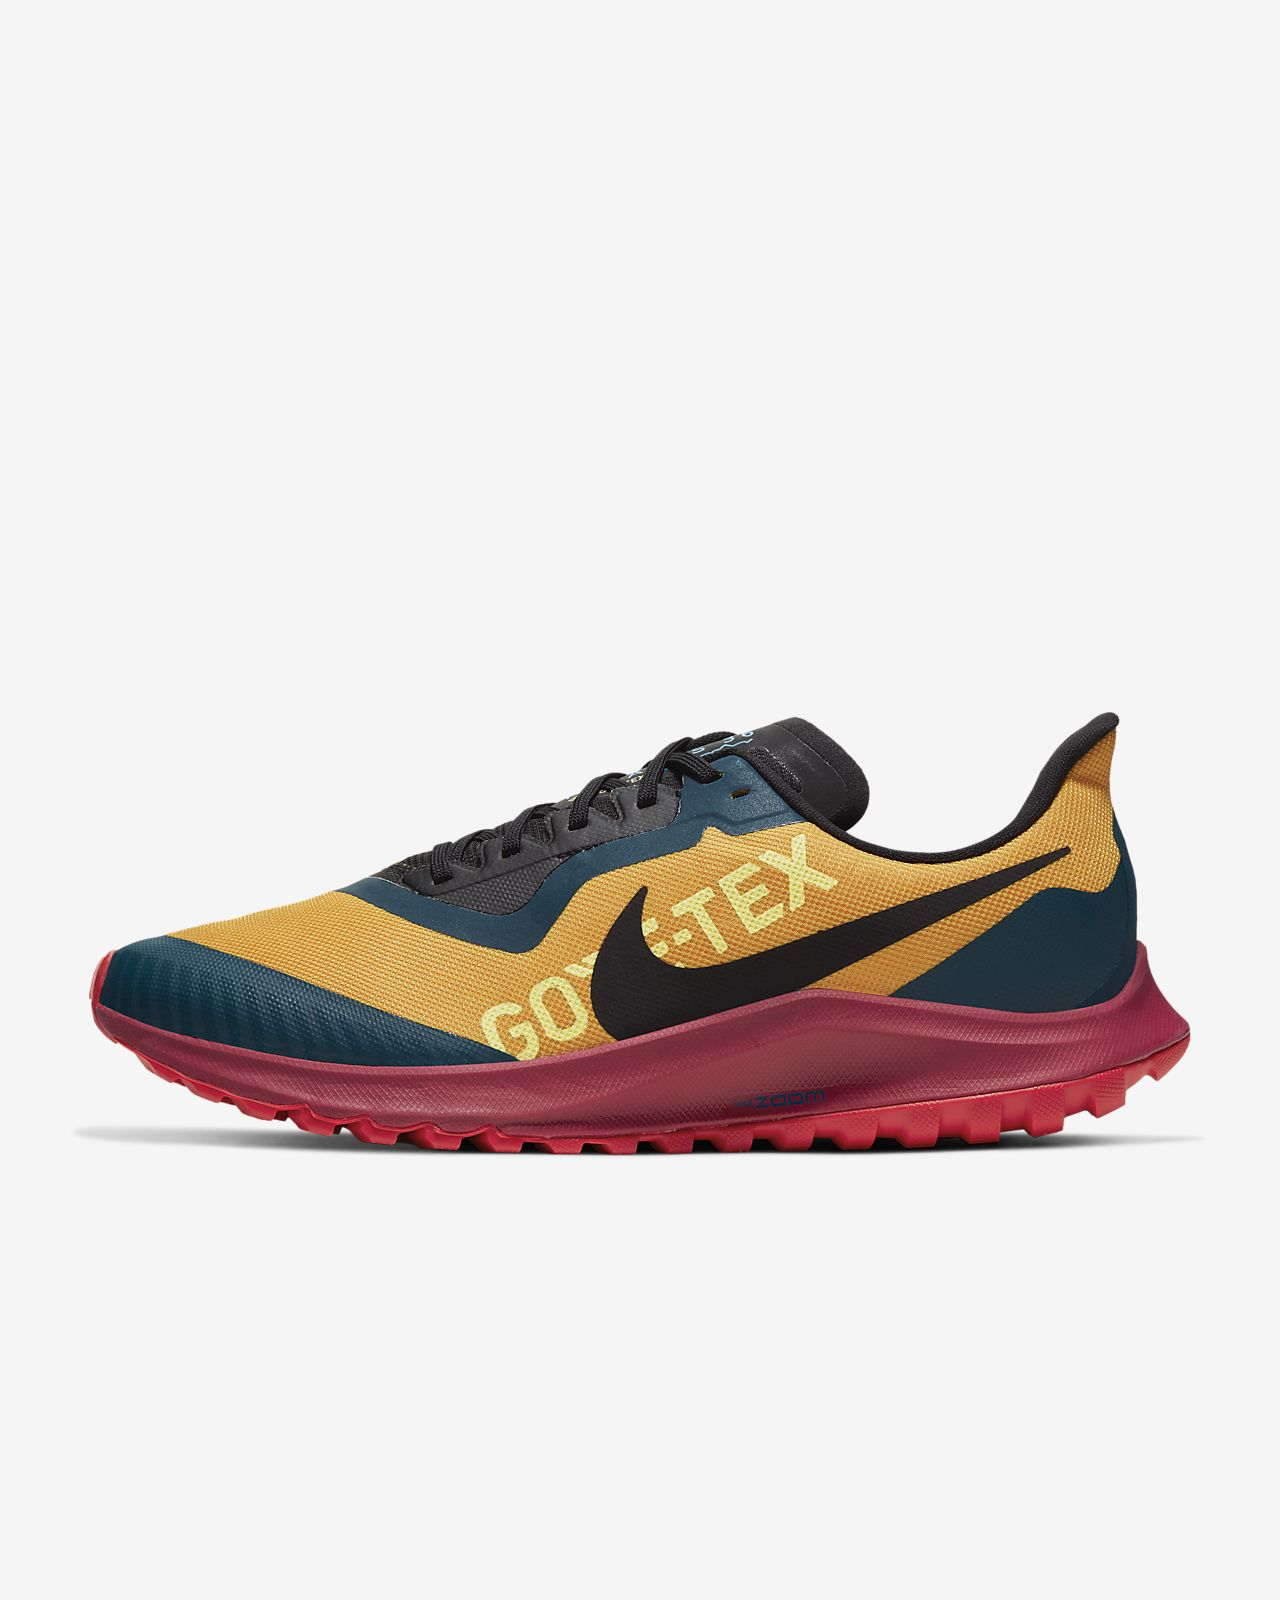 Nike Air Zoom Pegasus 36 Trail GORE-TEX Trail Running Shoe